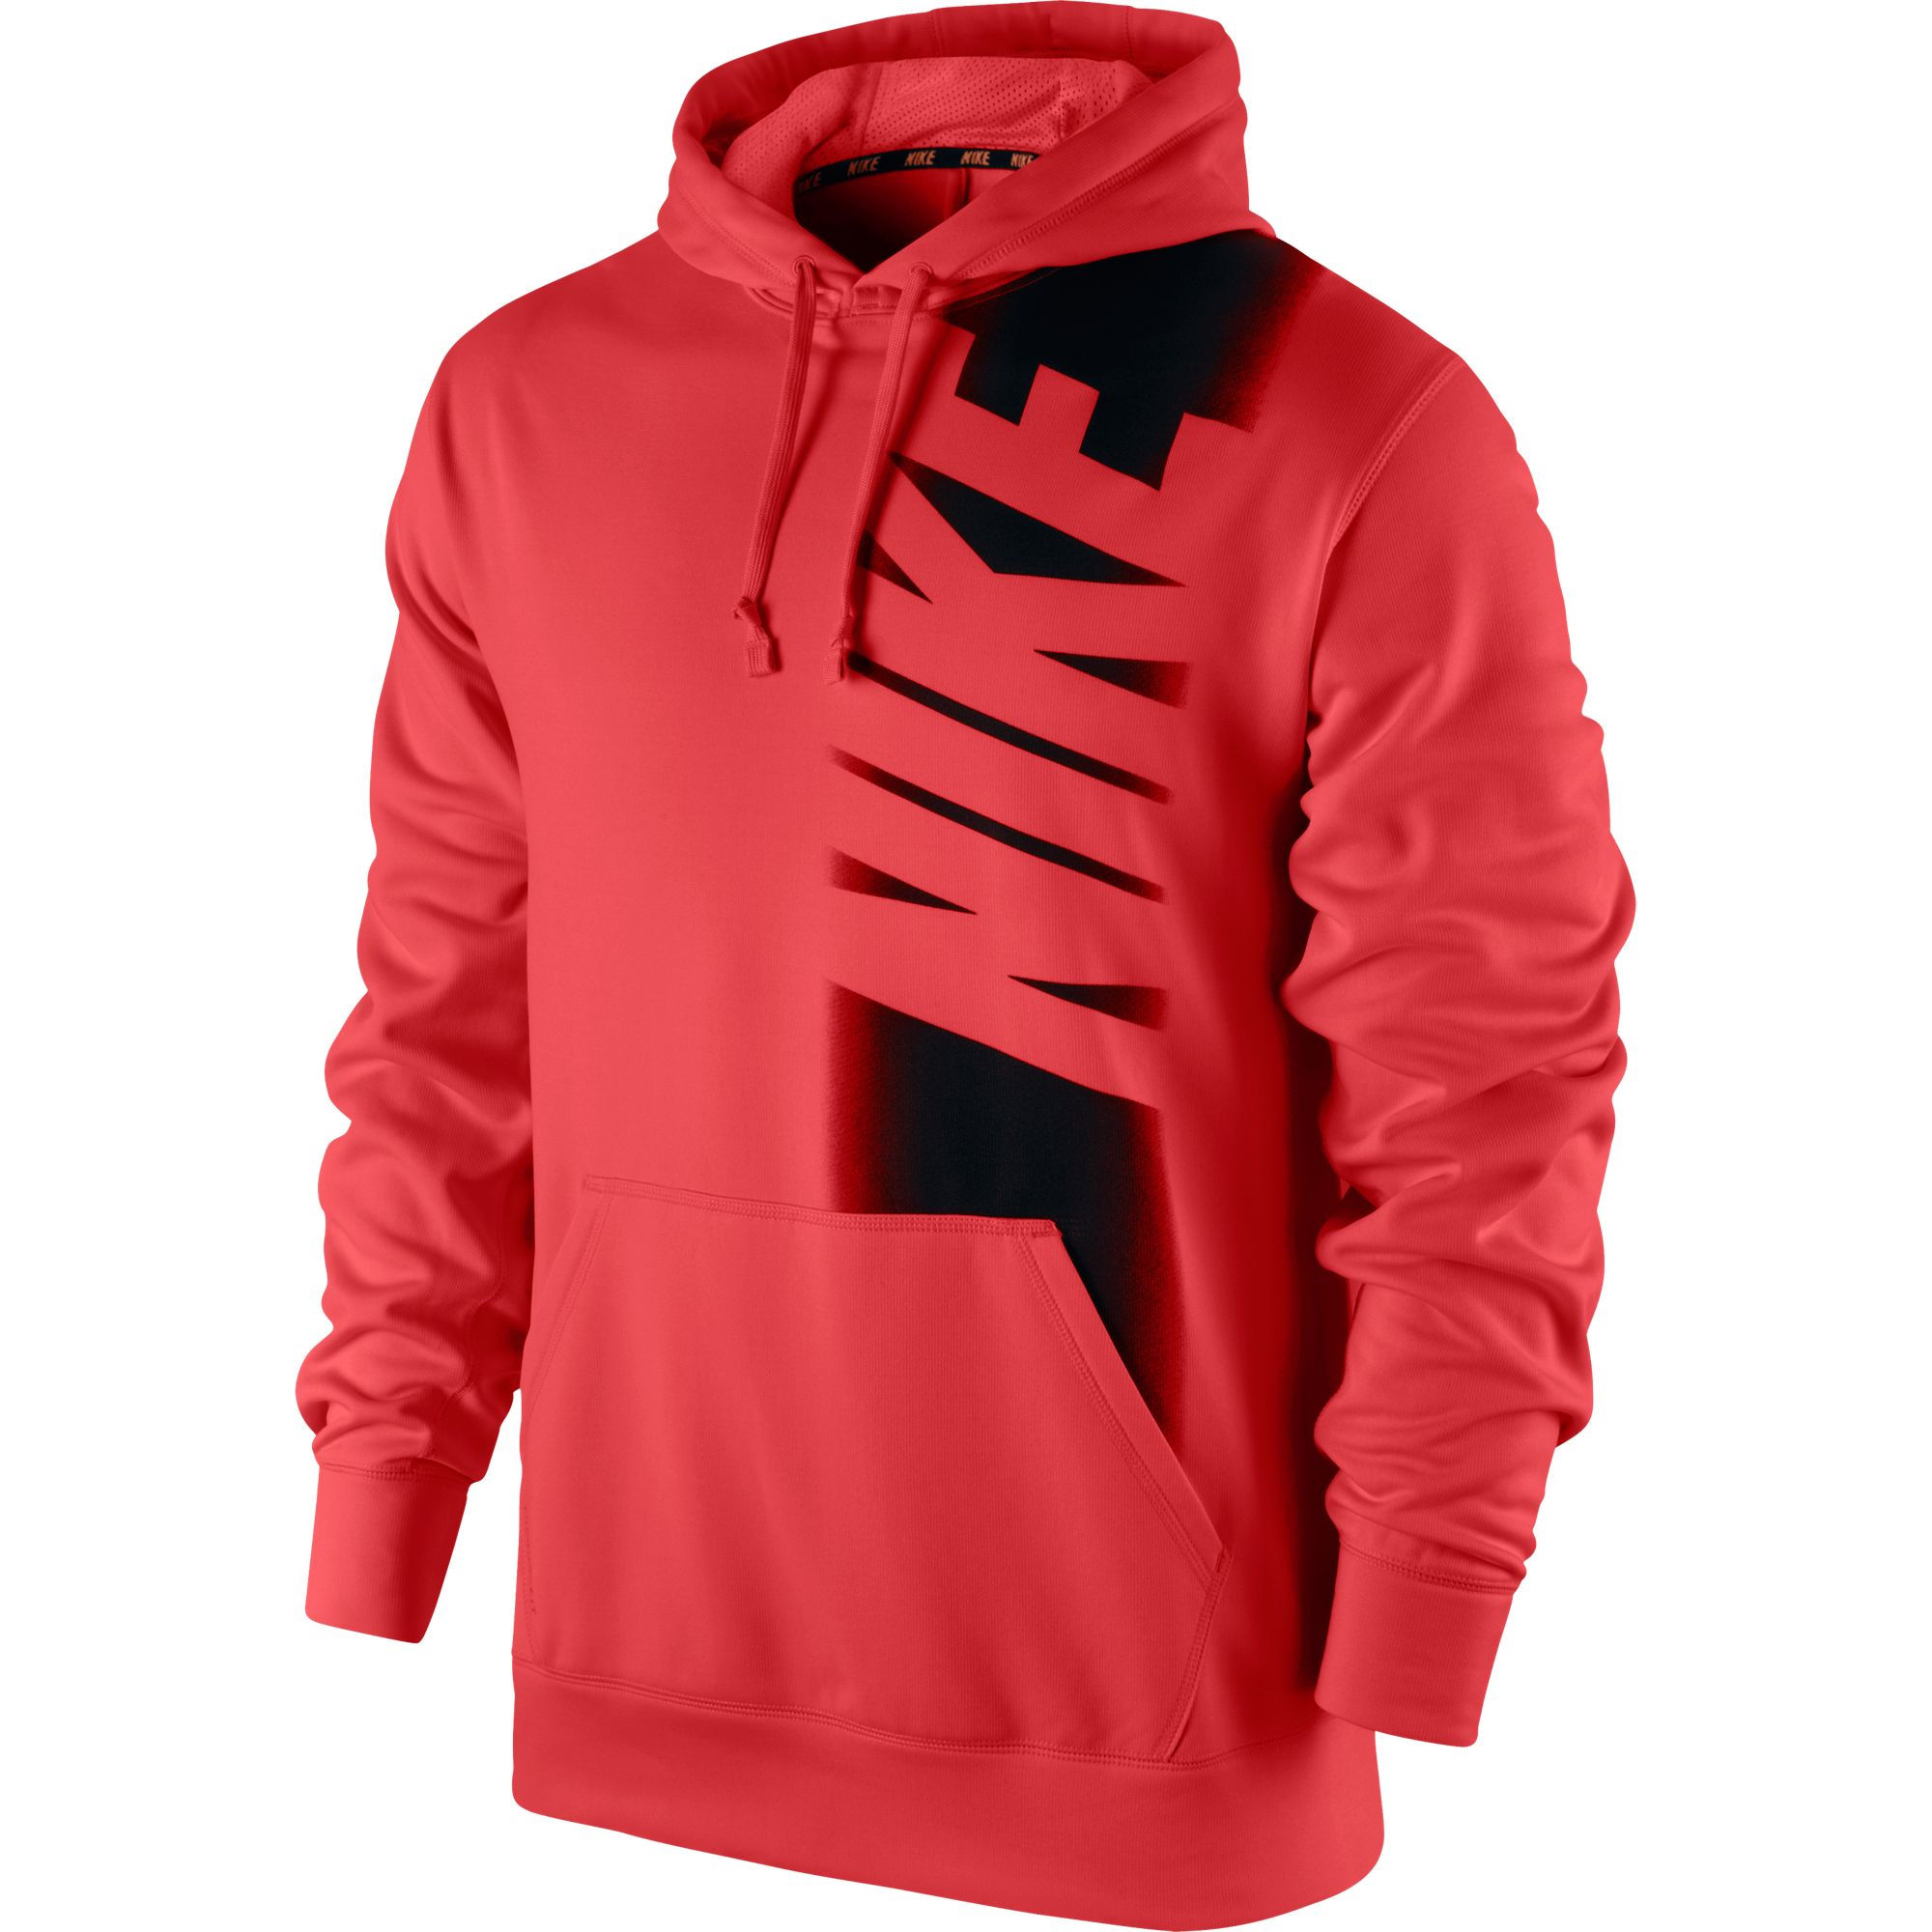 wiggle nike ko fade pull over hoodie sp14 long sleeve running tops. Black Bedroom Furniture Sets. Home Design Ideas